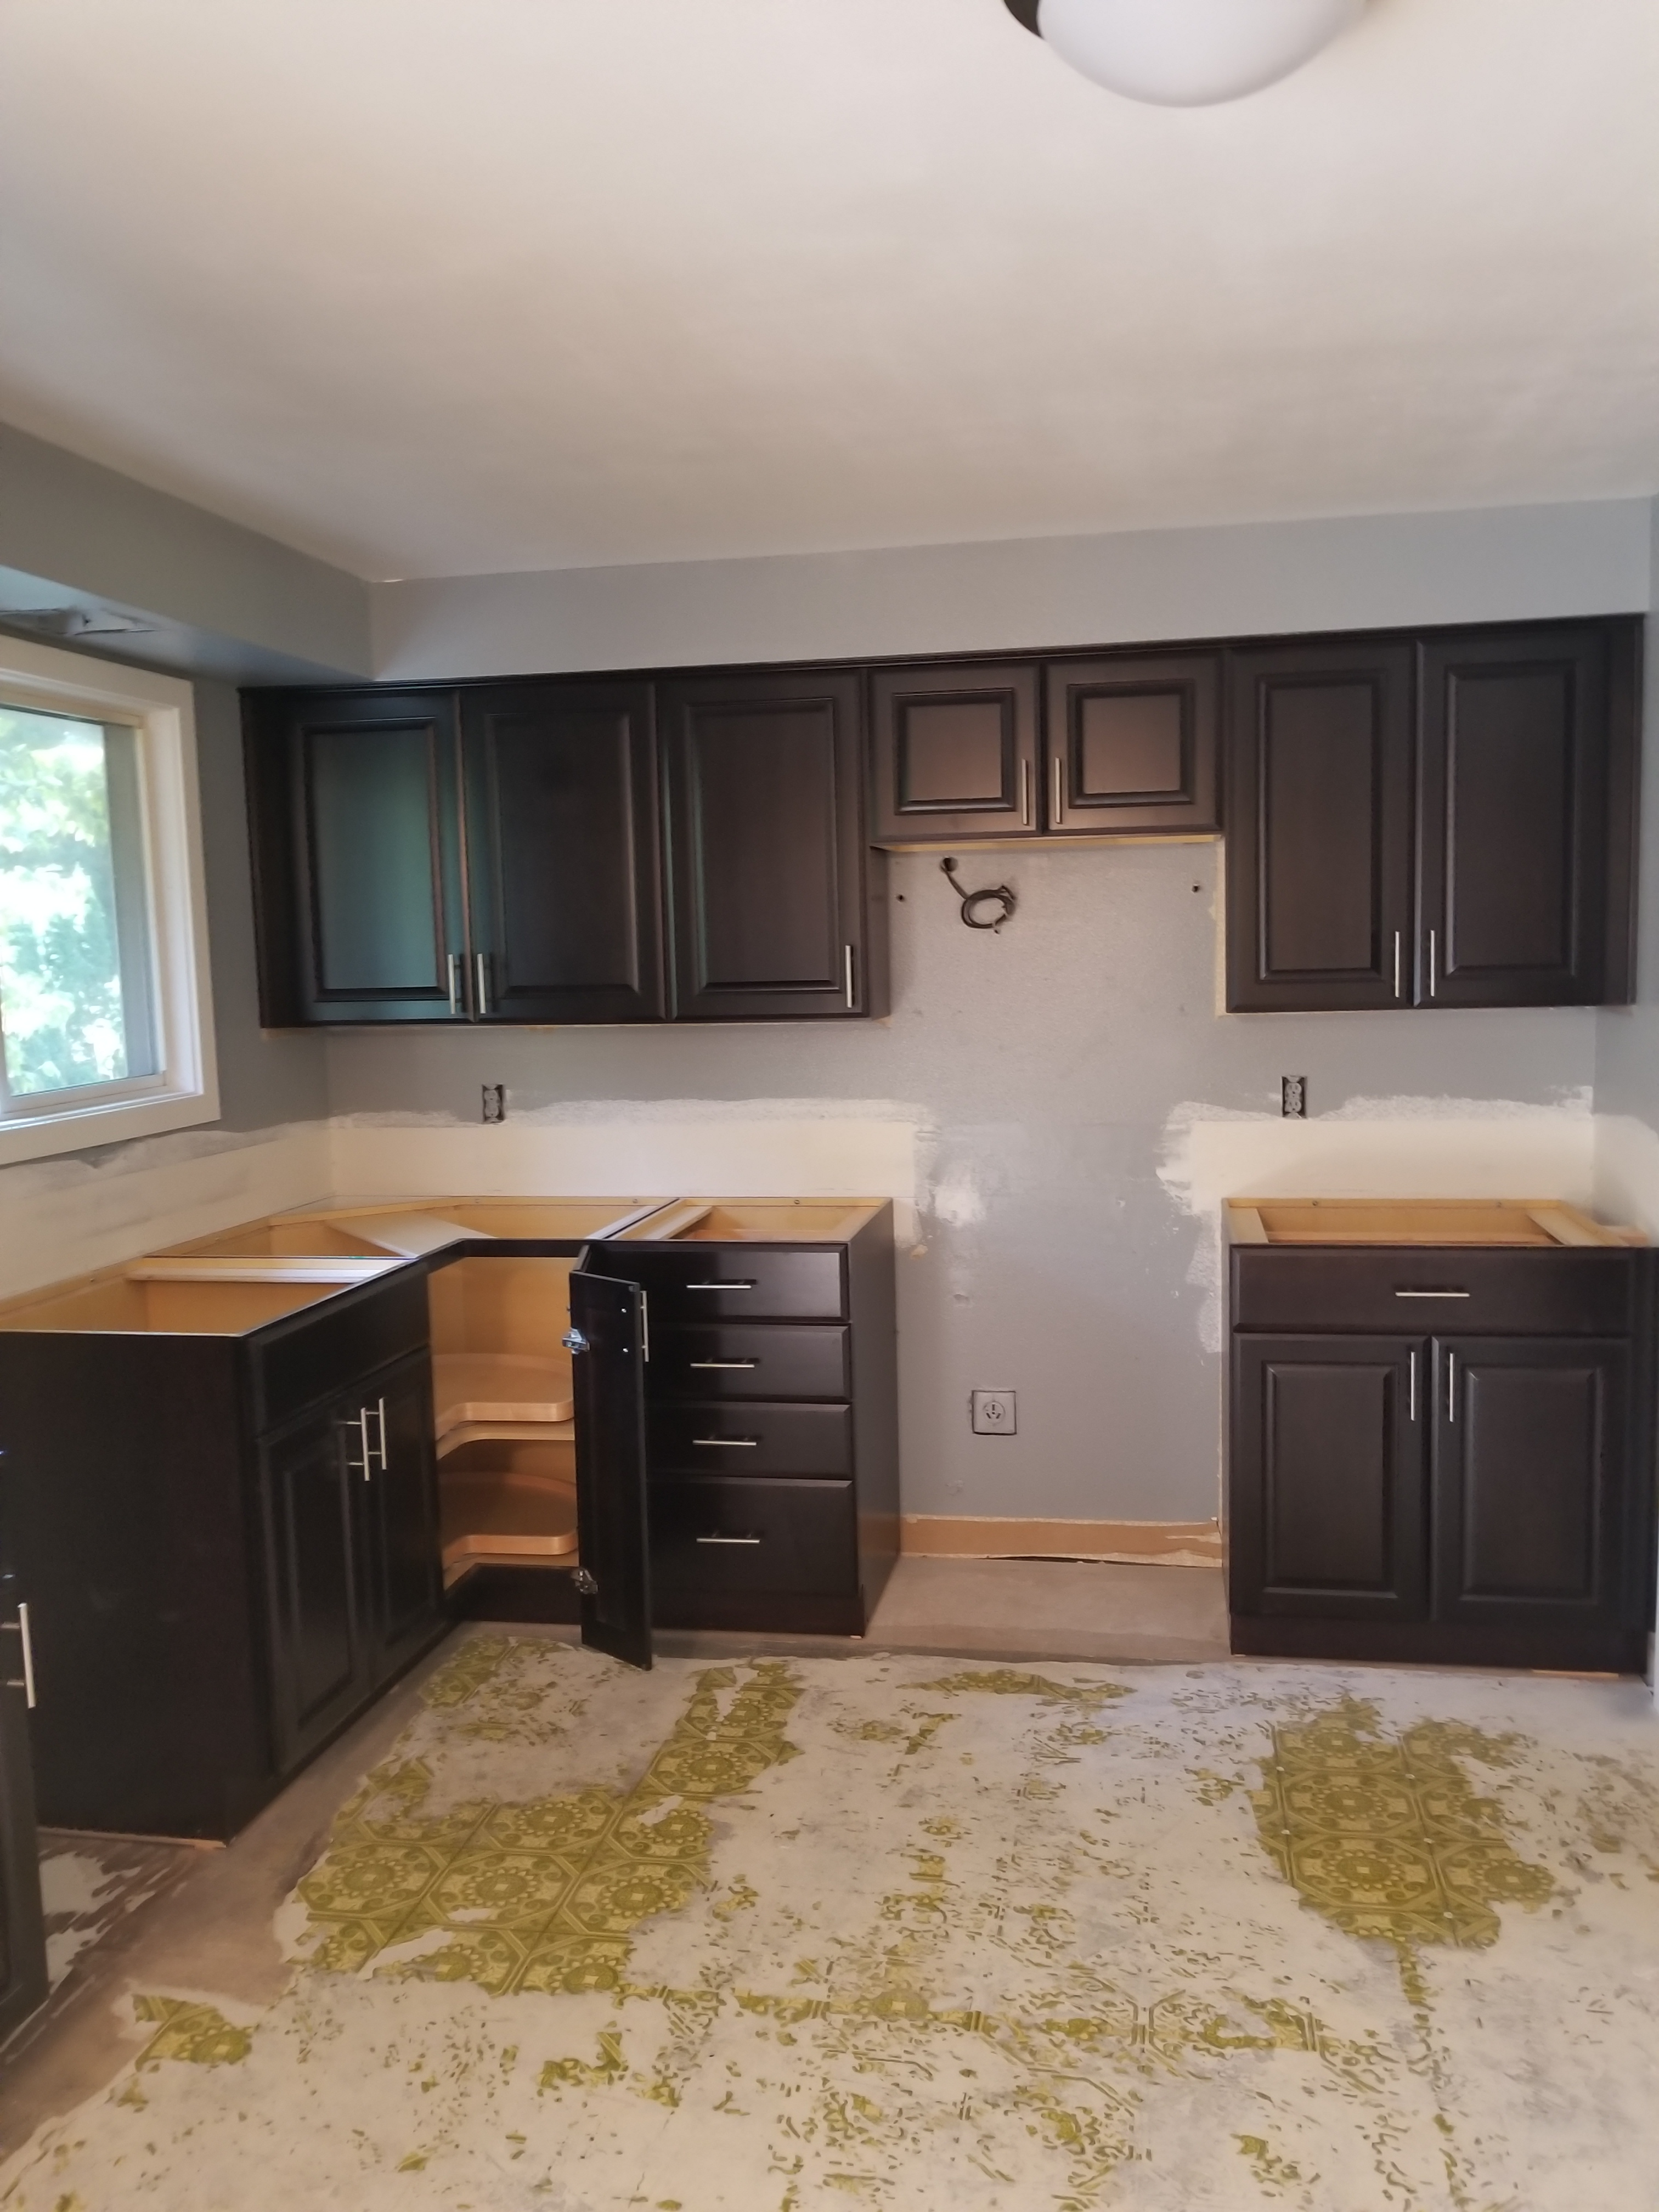 Top 10 Reviews Of Lowe's Kitchen Cabinets - Kitchen Cabinets Pantry